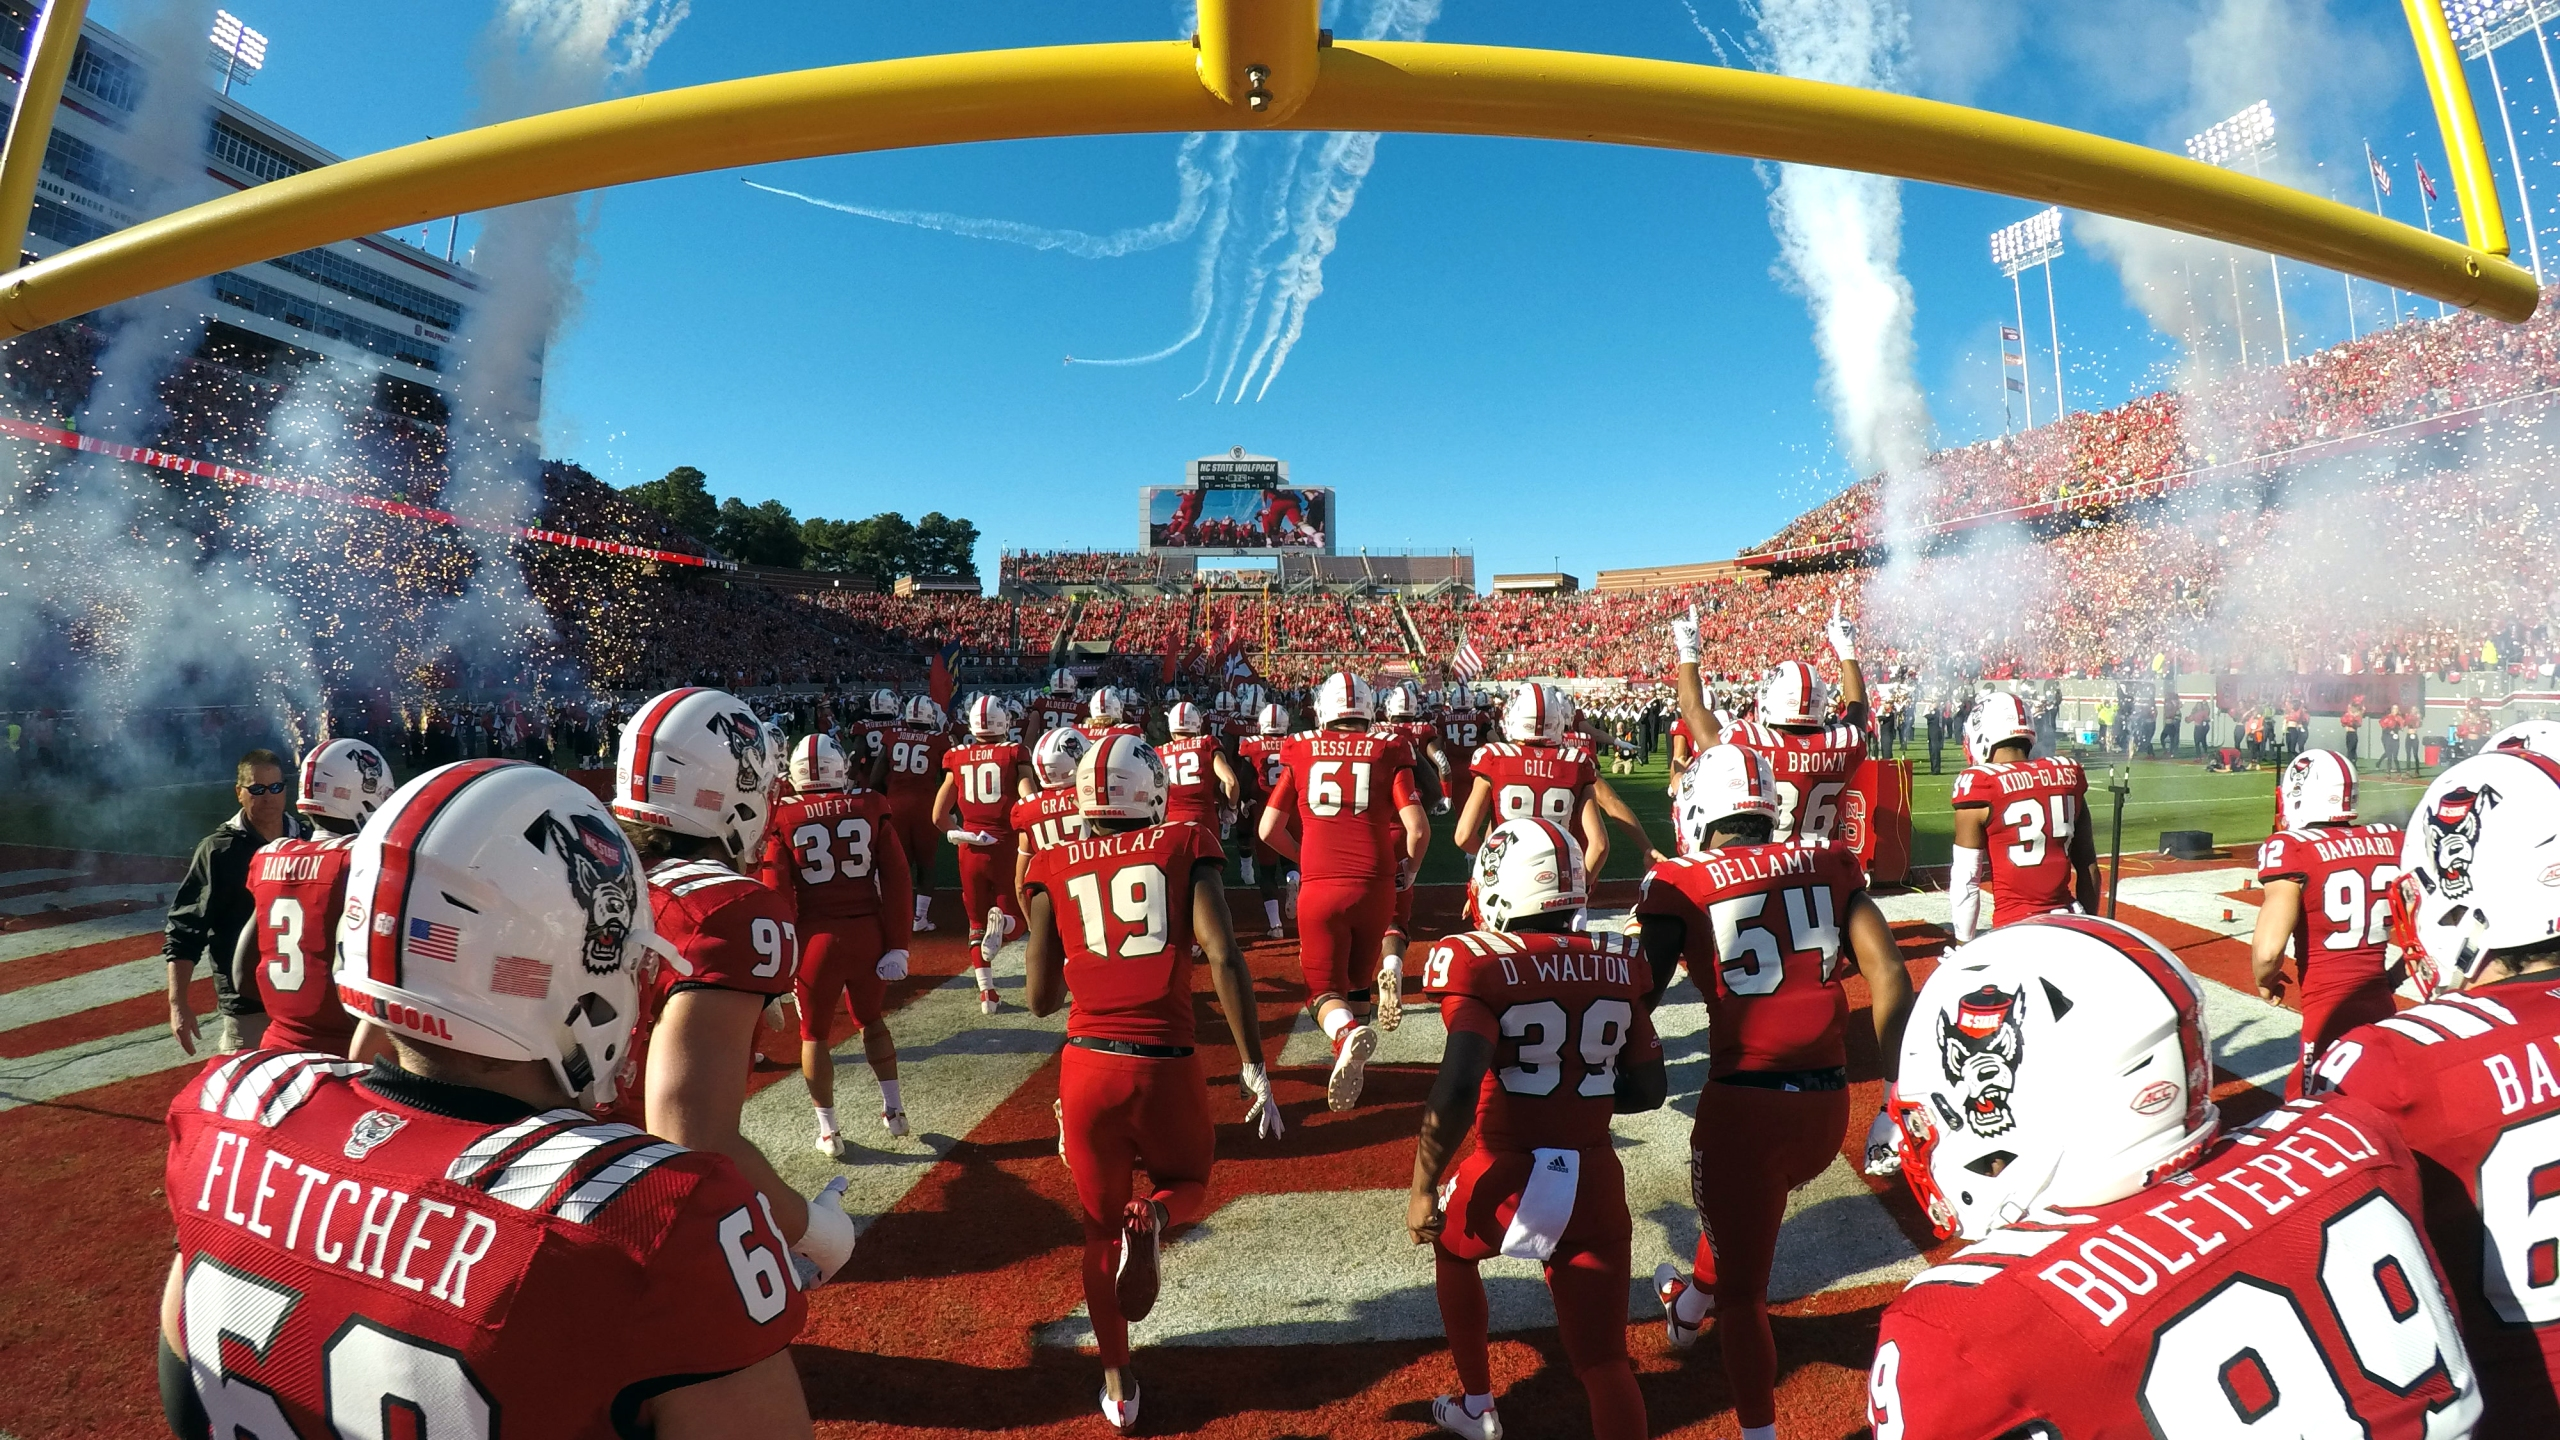 RALEIGH, NC - NOVEMBER 03: Players of the North Carolina State Wolfpack run onto the field as planes fly overhead prior to their game against the Florida State Seminoles at Carter-Finley Stadium on November 3, 2018 in Raleigh, North Carolina. (Photo by Lance King/Getty Images)